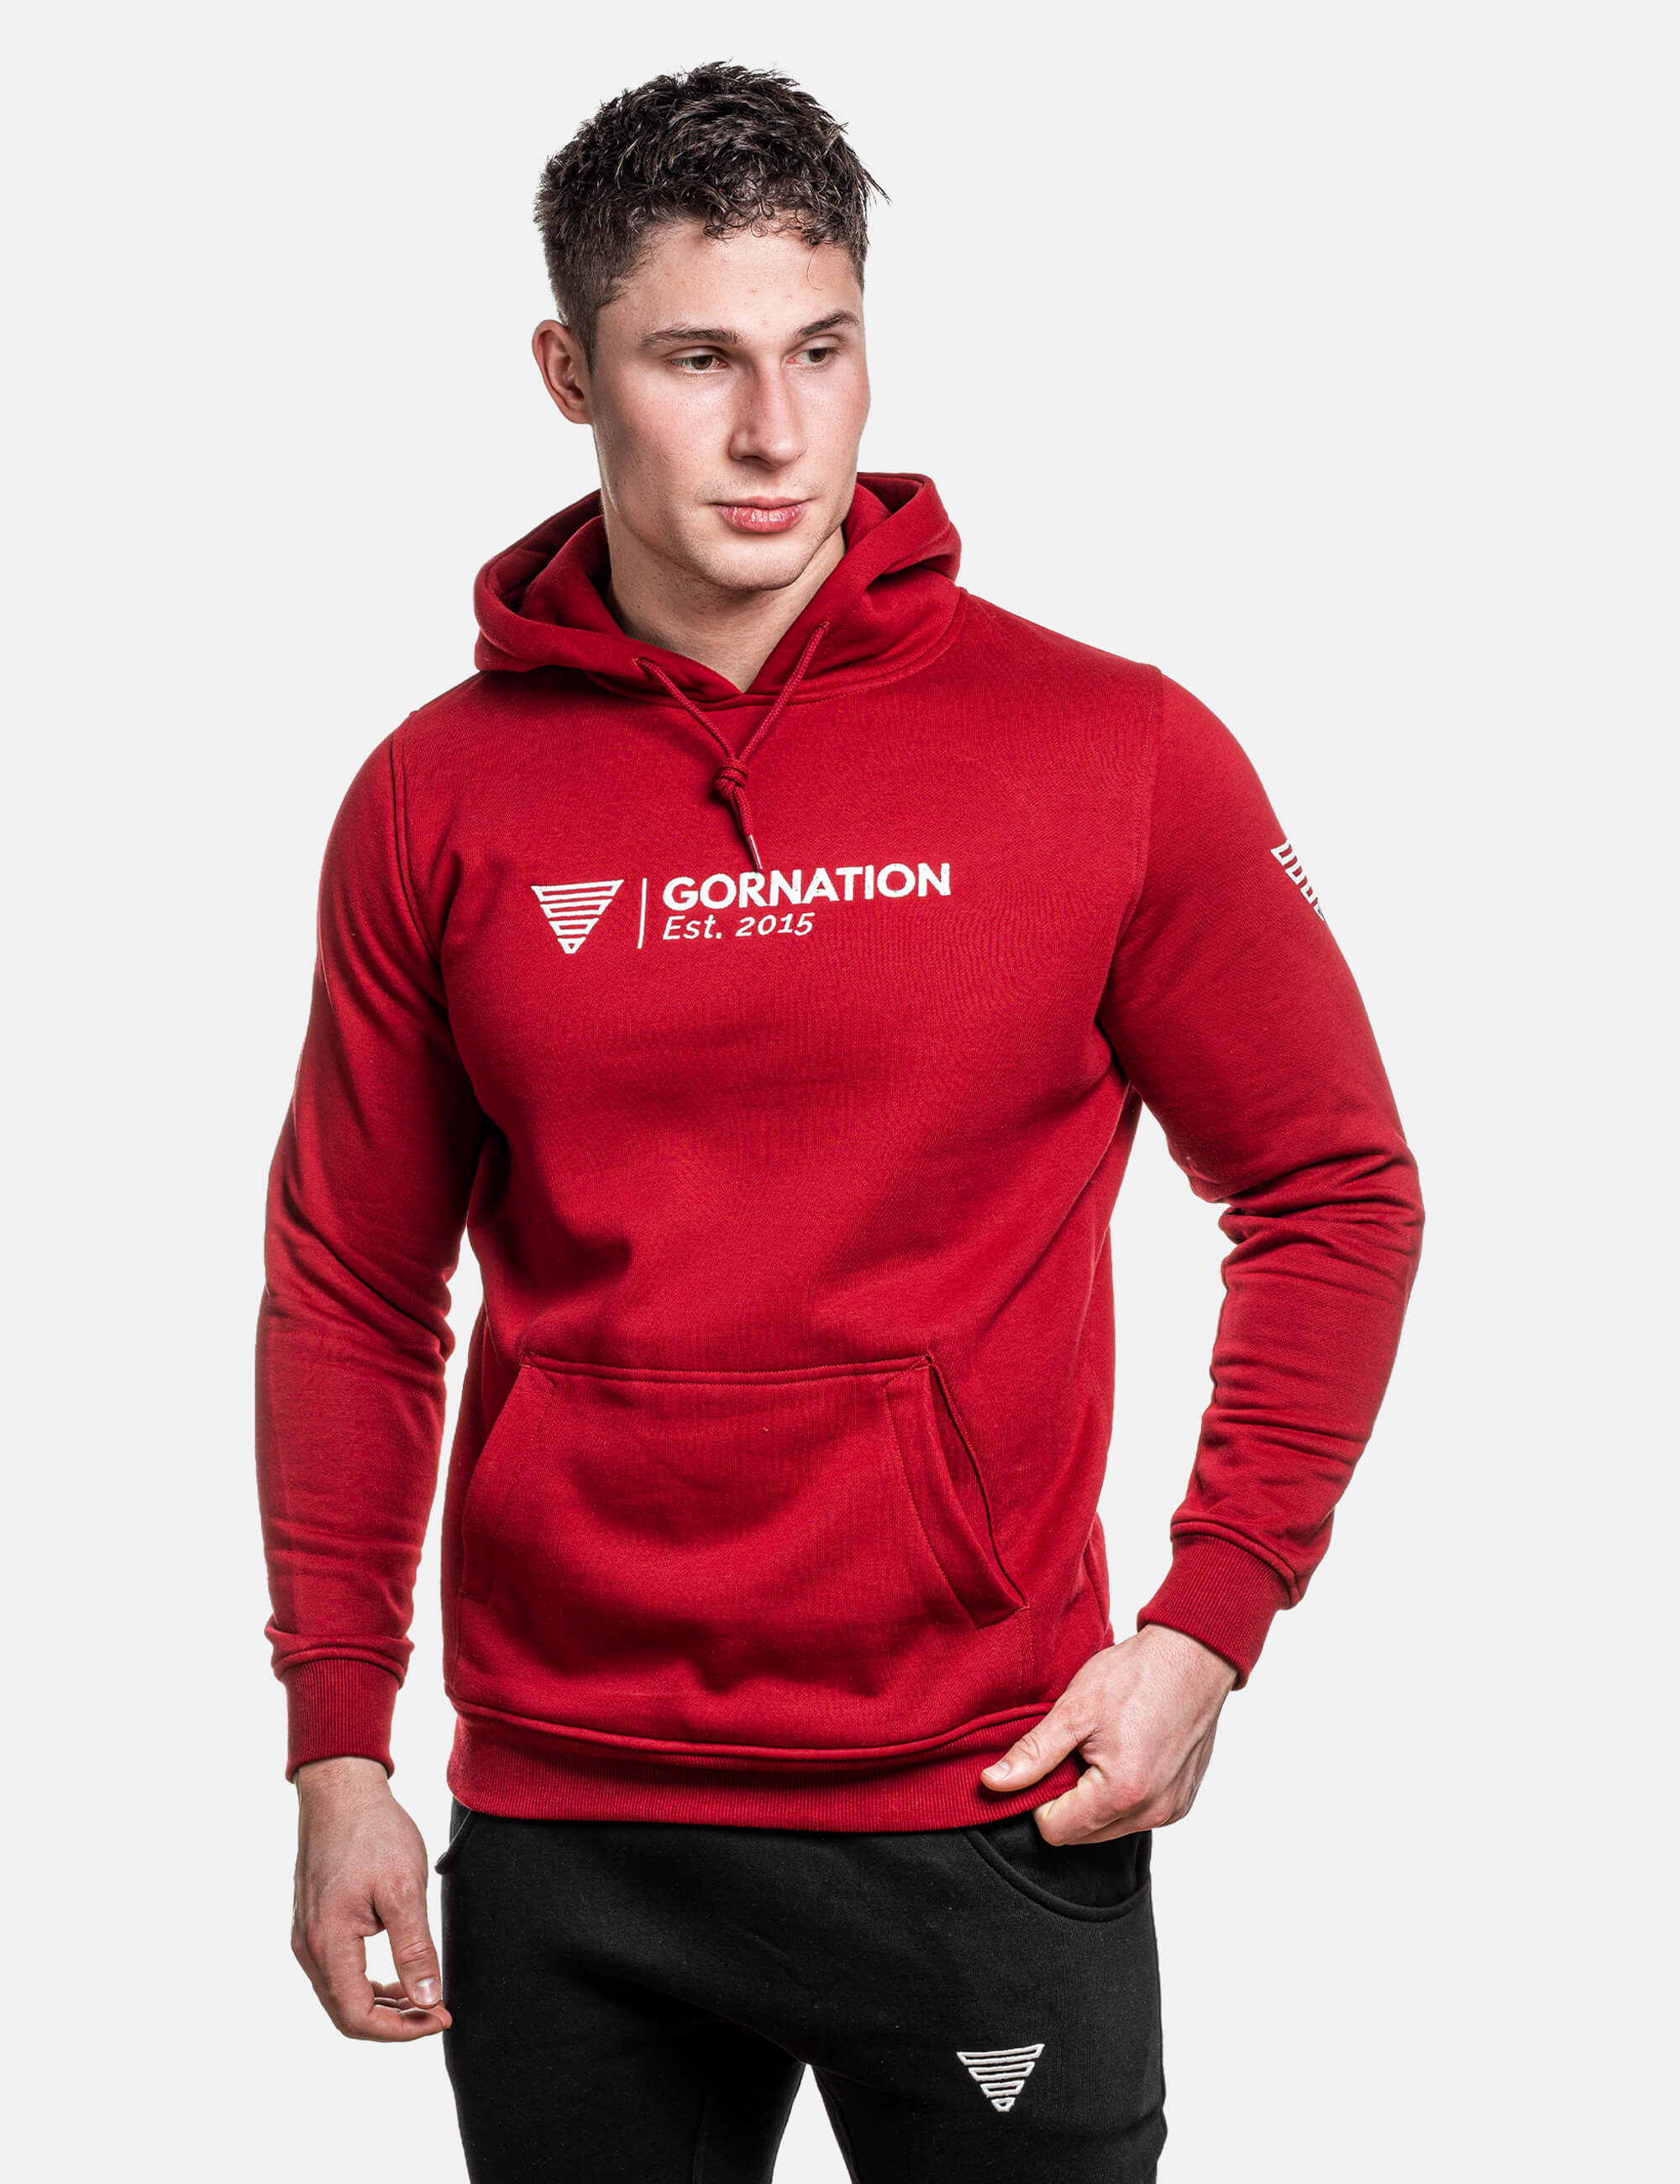 Calisthenics Athletes presents the front side of the red Anniversary hoodie from Gornation showing the text and logo.